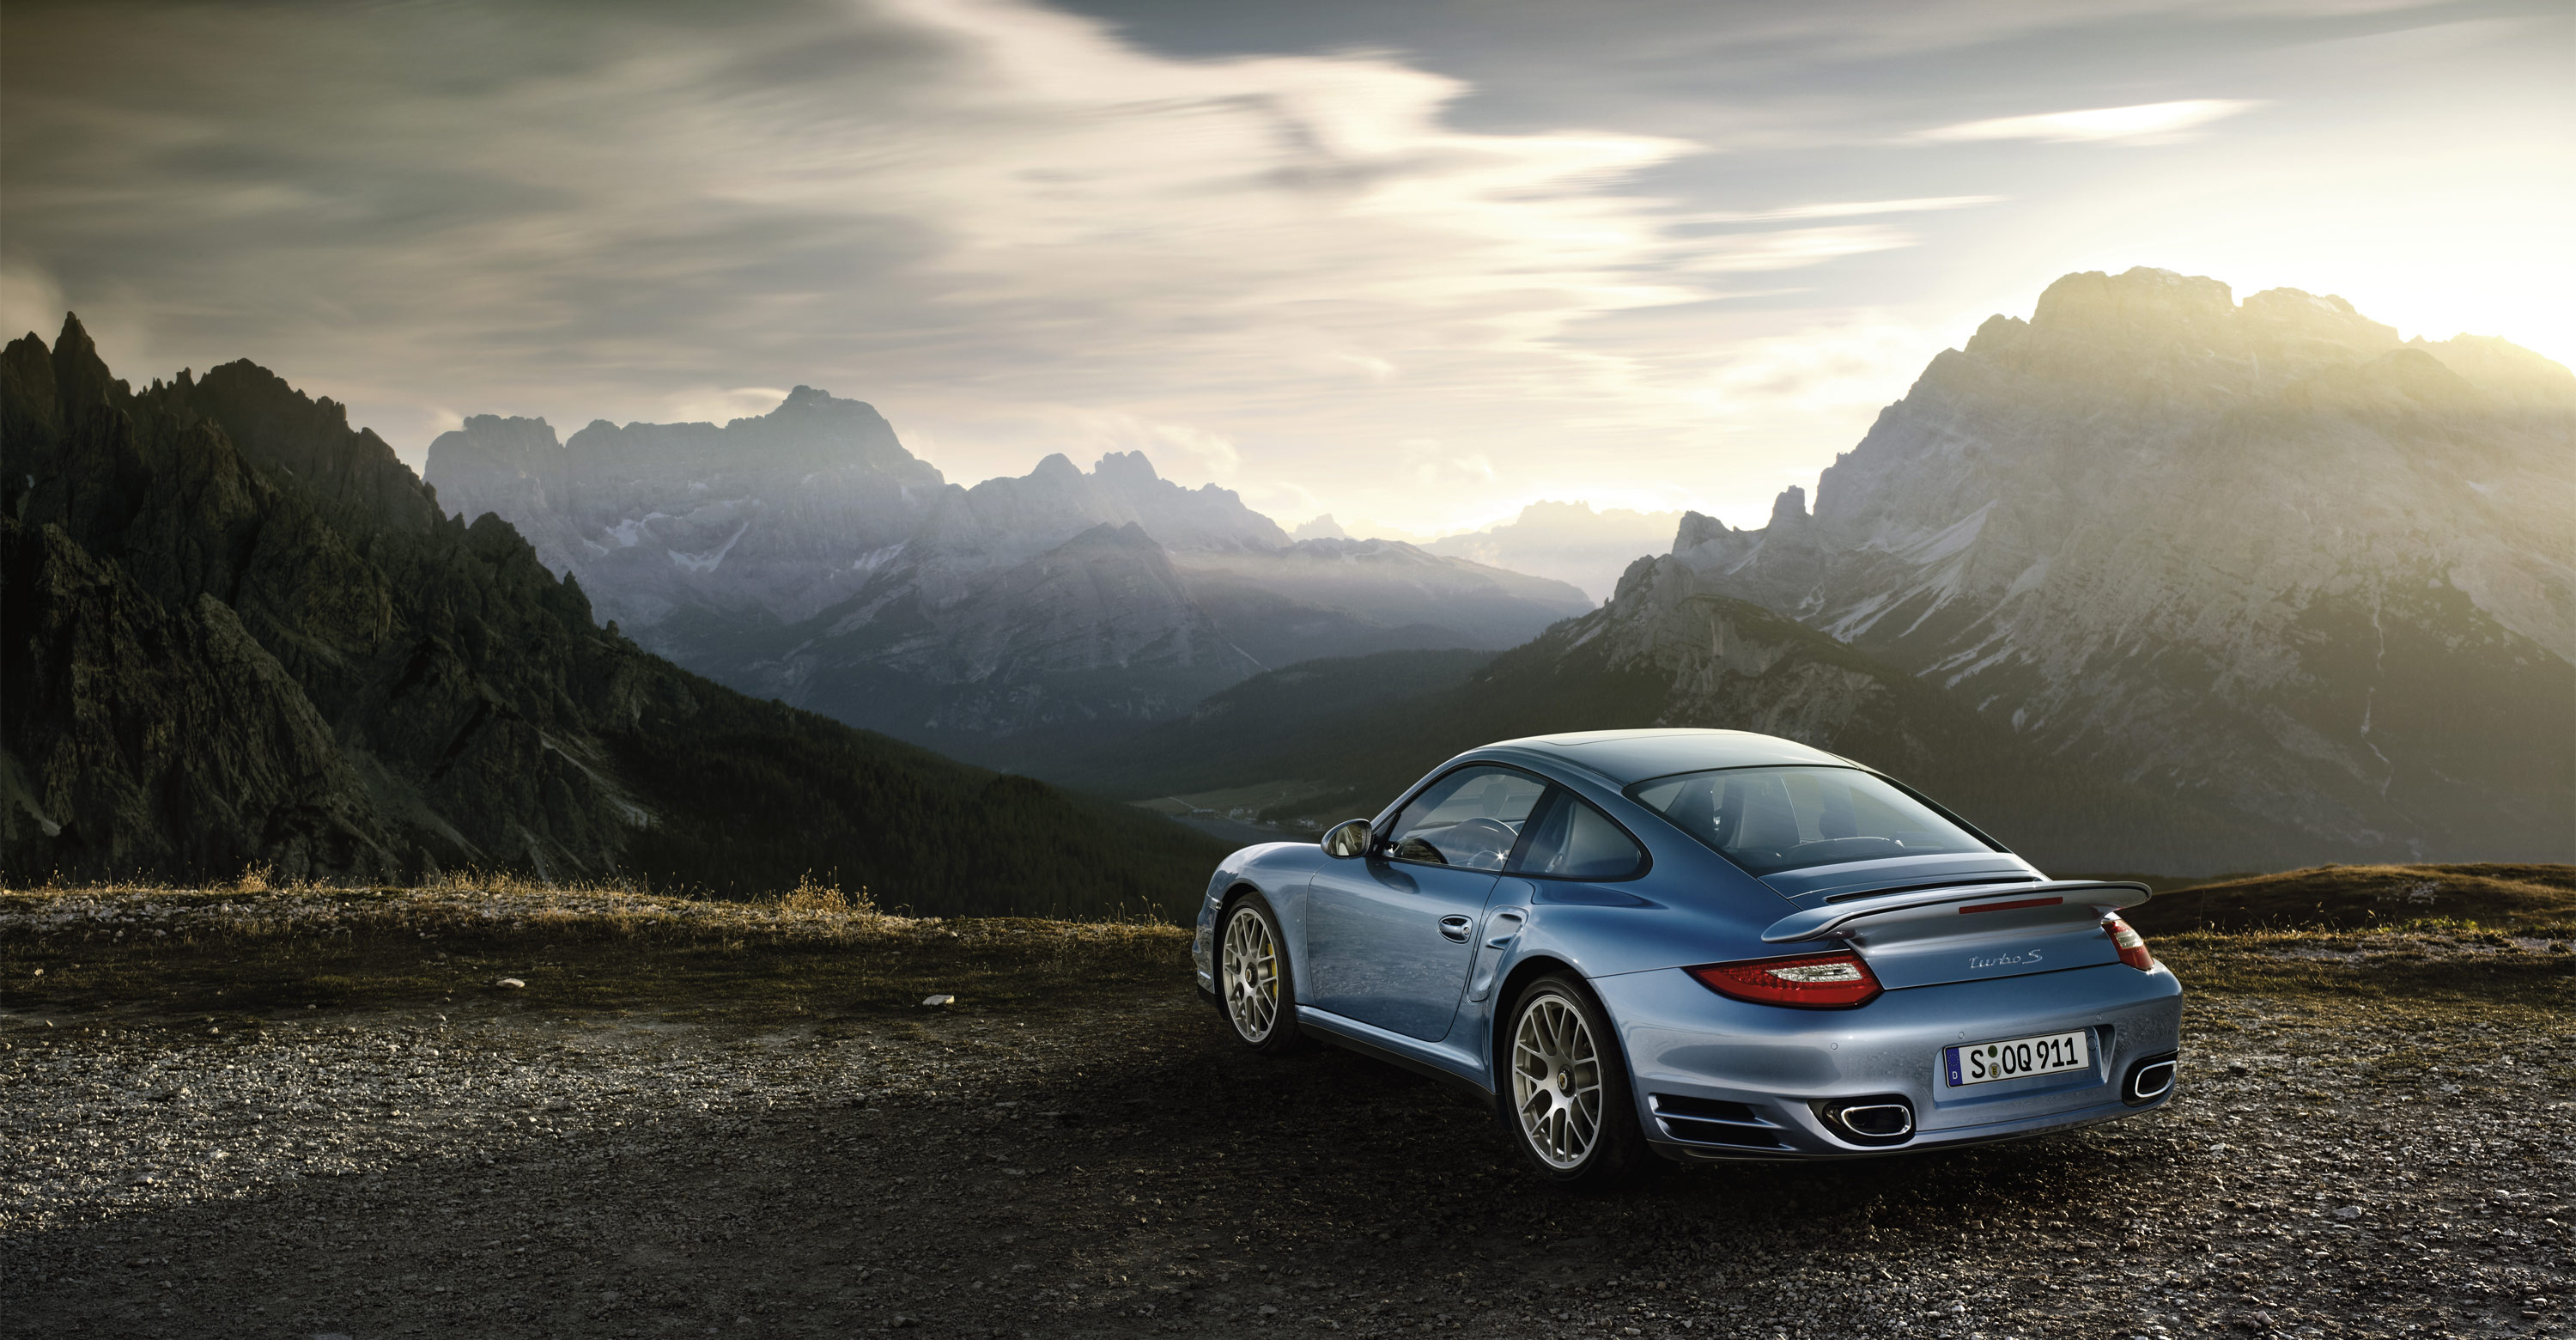 2011 ice blue porsche 911 turbo s wallpapers